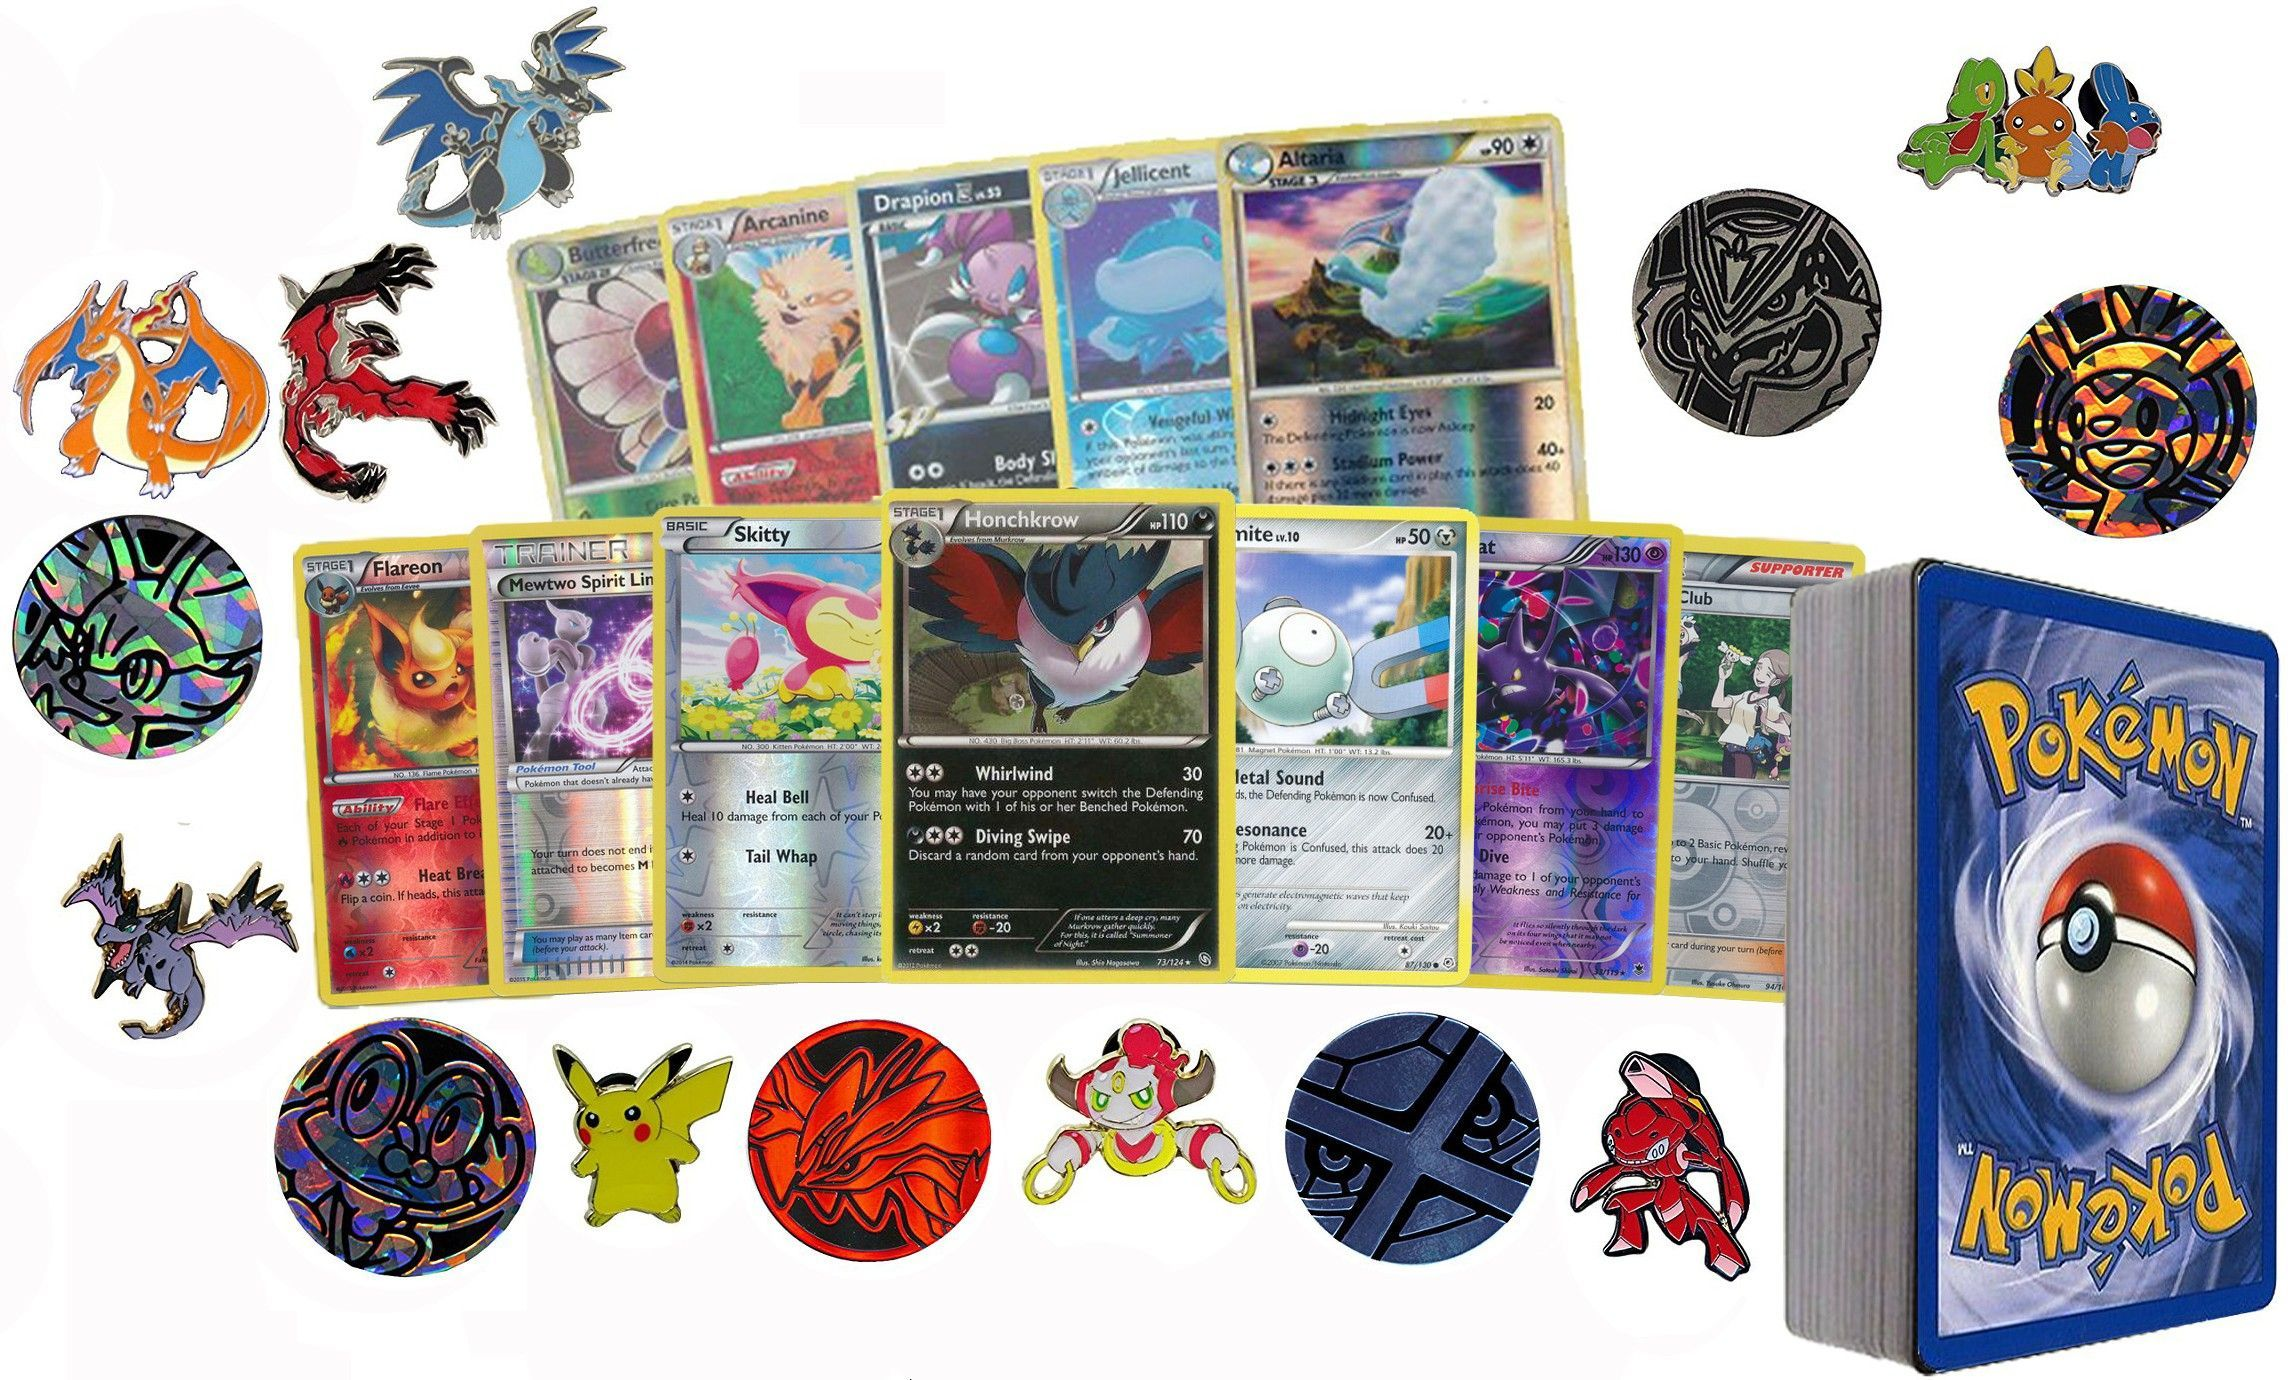 50 Assorted Pokemon Card Pack Lot This Comes With Foils, Rares, Random Pokemon Pin, and Pokemon Collectible... by POKEMONUSA